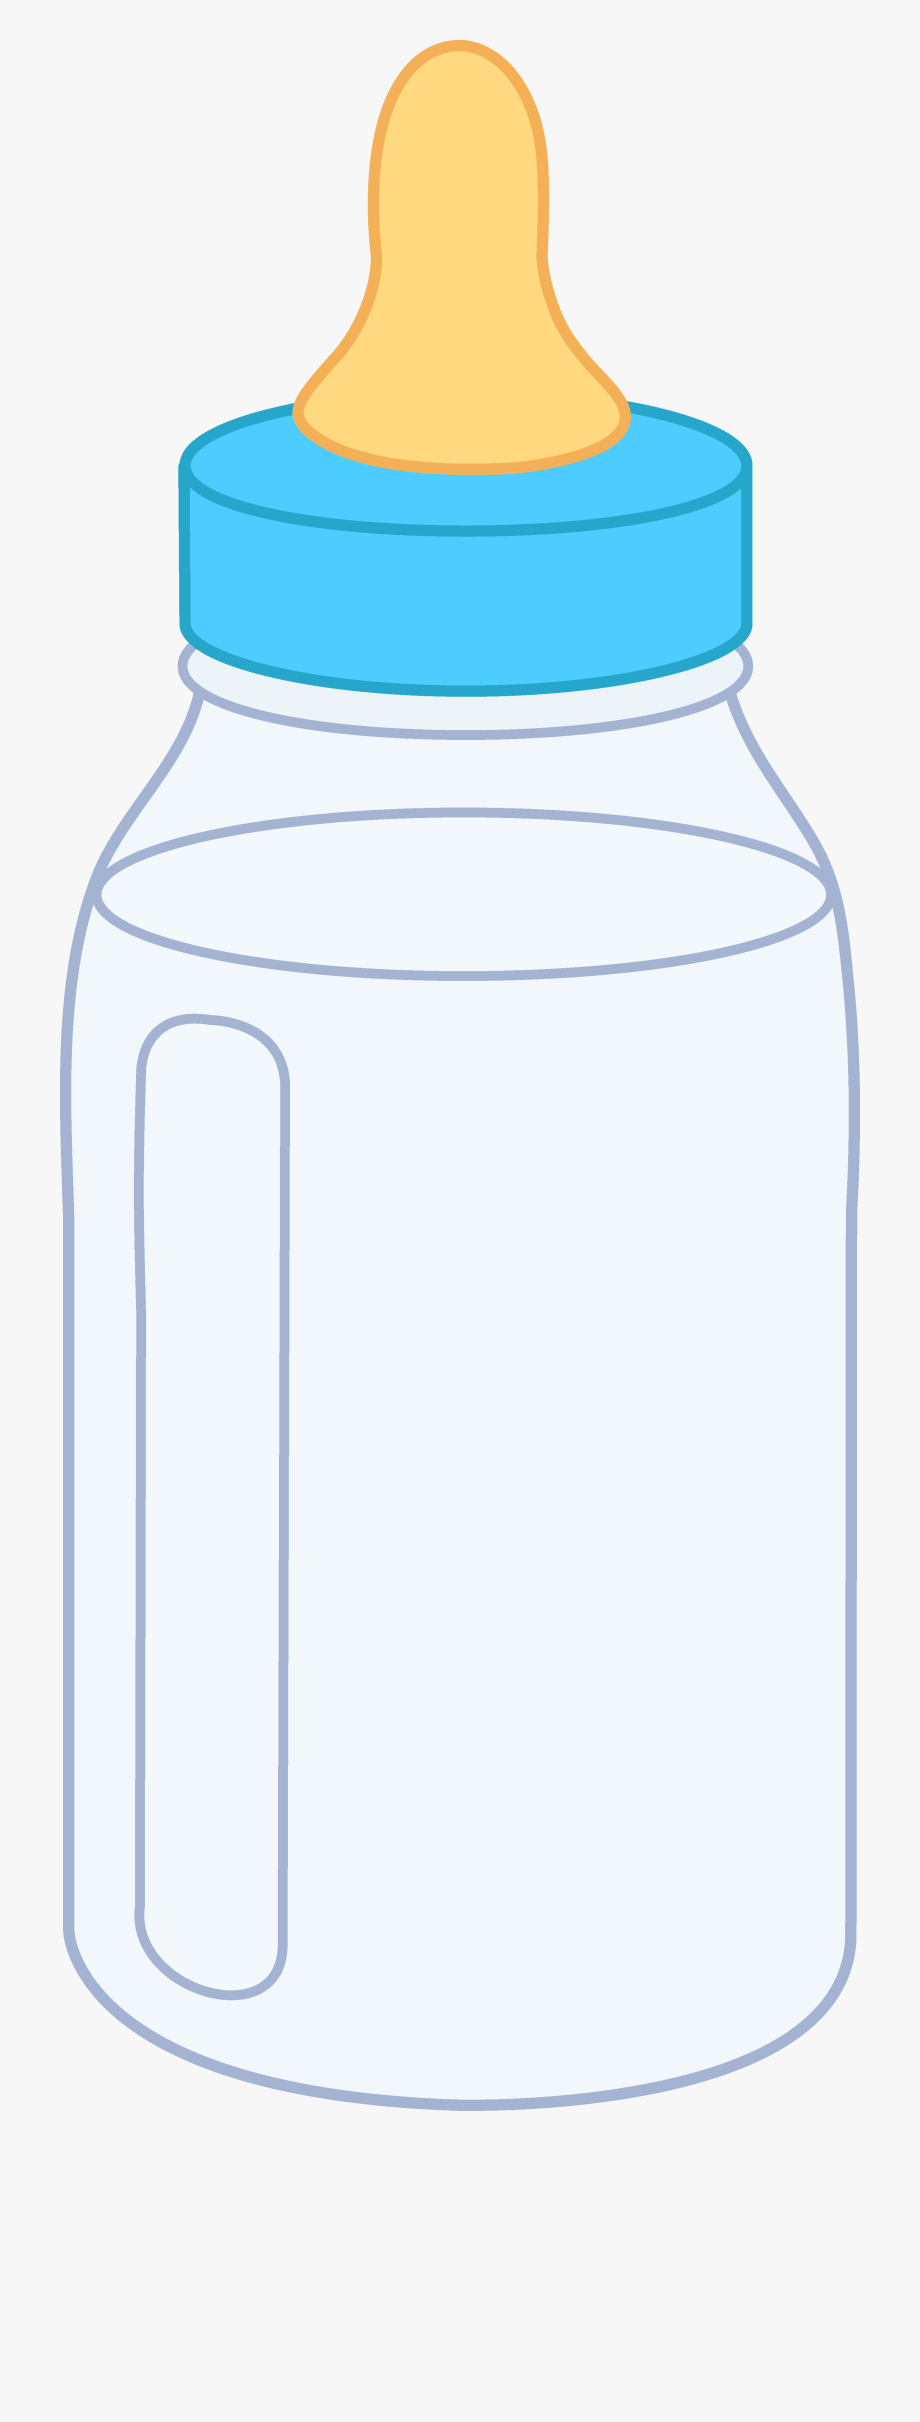 Pink and blue baby bottle clipart clip transparent download Blue Baby Bottle Baby Clip Art, Baby Bottles, Bottle - Baby ... clip transparent download